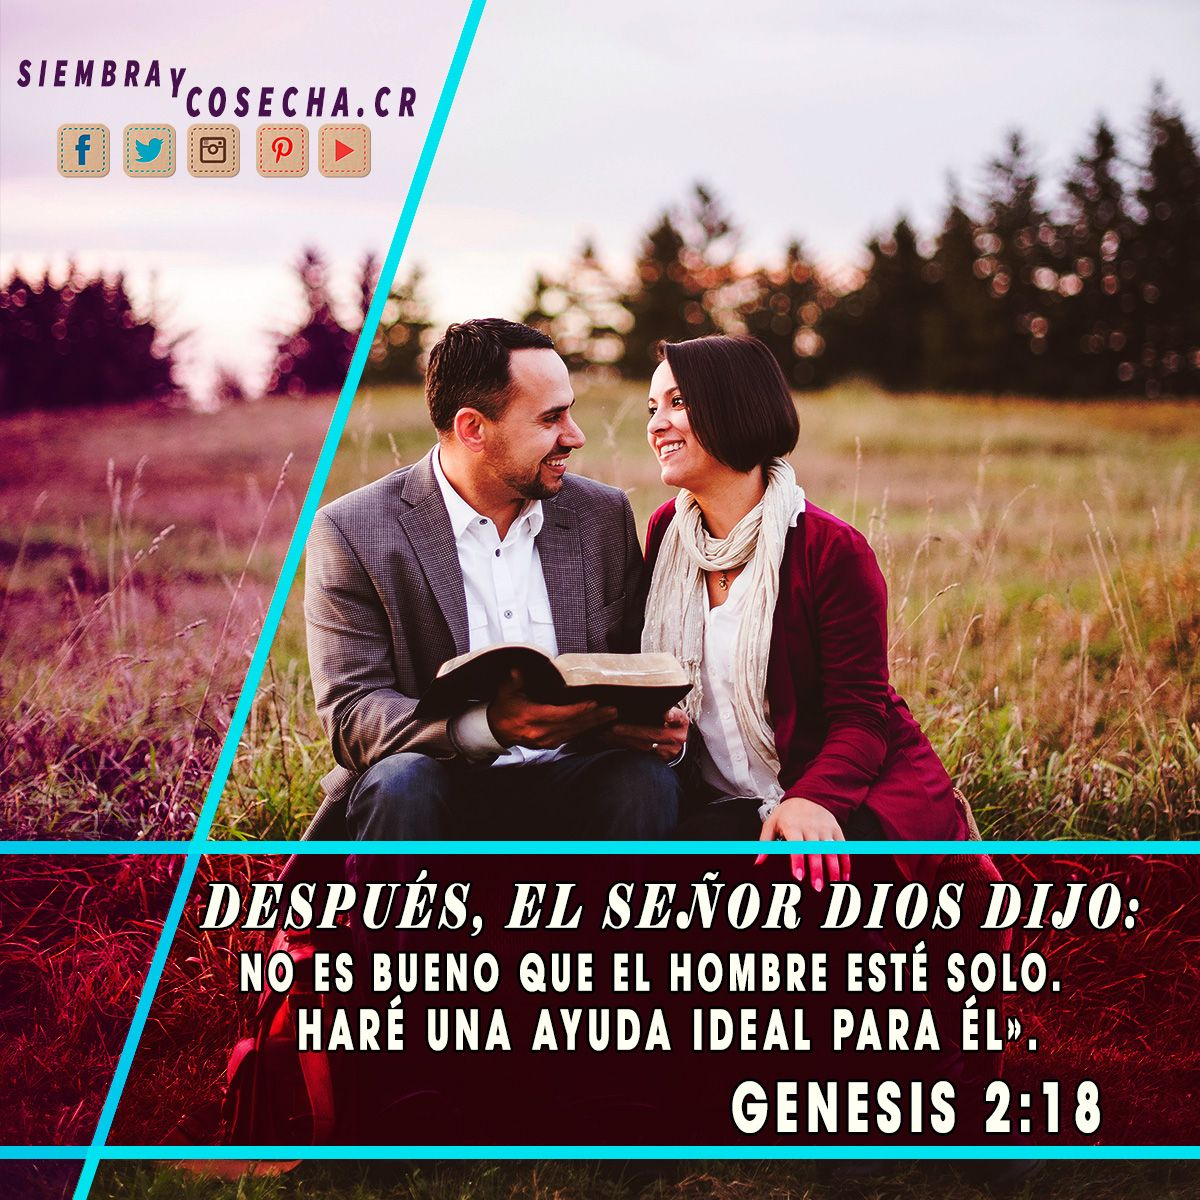 GENESIS 2:18 SITIO WEB:  http://siembracr.wixsite.com/siembracr